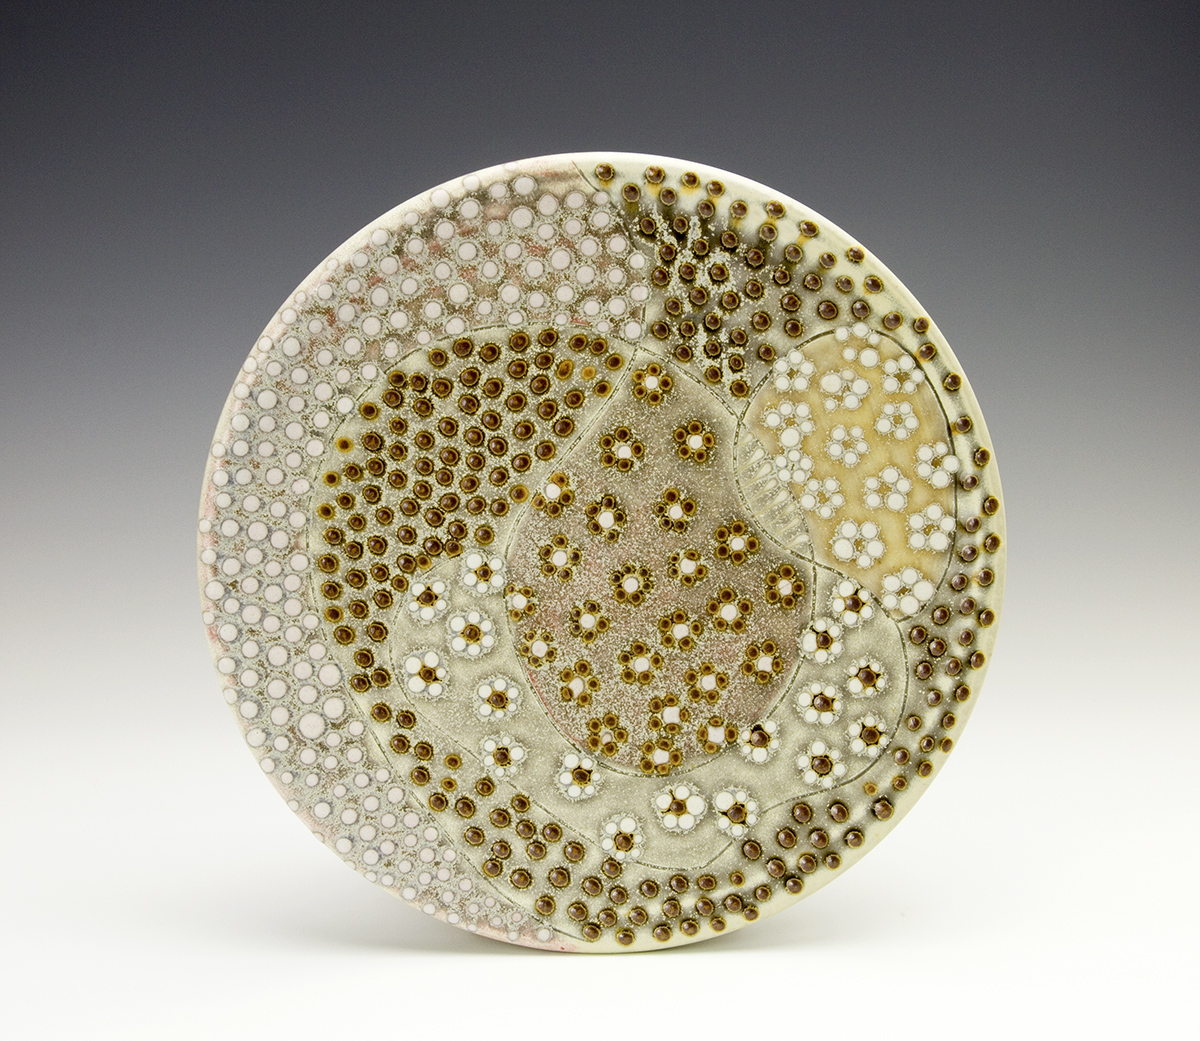 Dotted Plate by Samantha Henneke